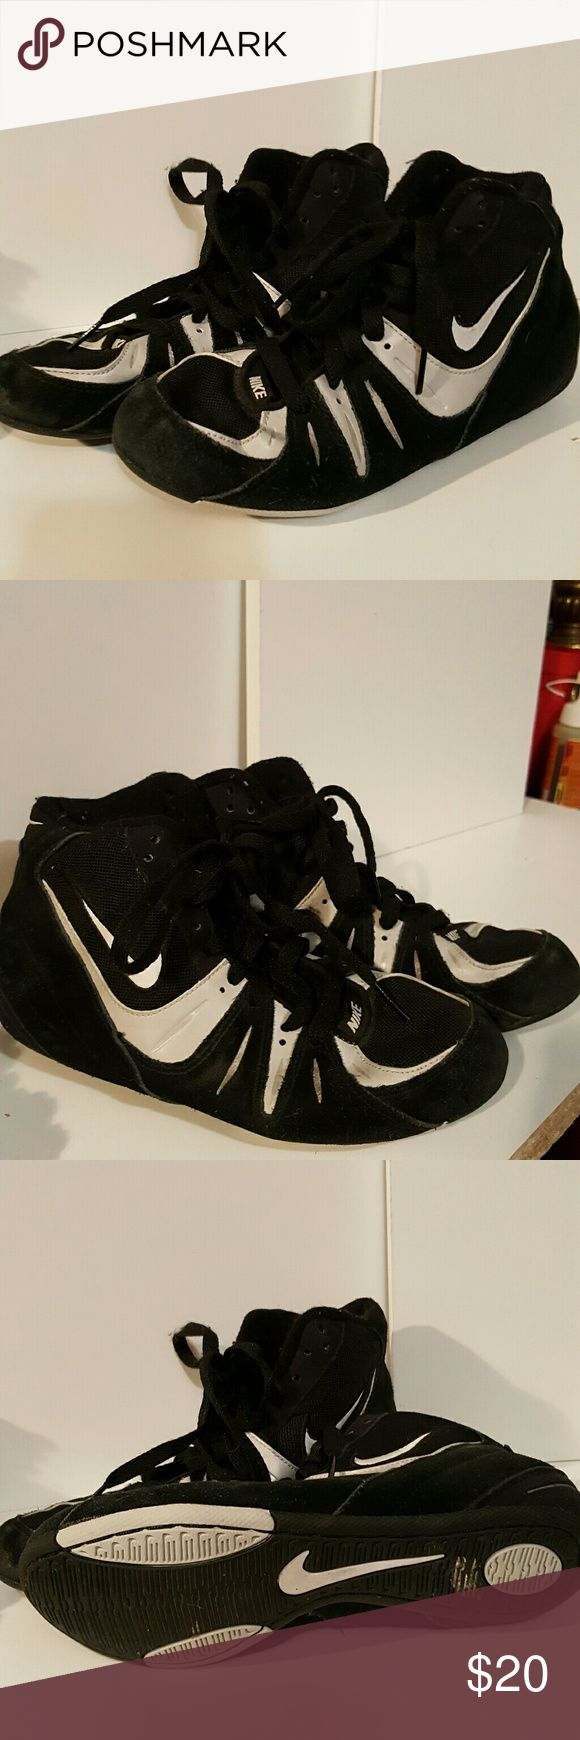 Nike wrestling shoes size boys 4.5 Uses, good condition,  stretched out. Not for a thin foot. Nike Shoes